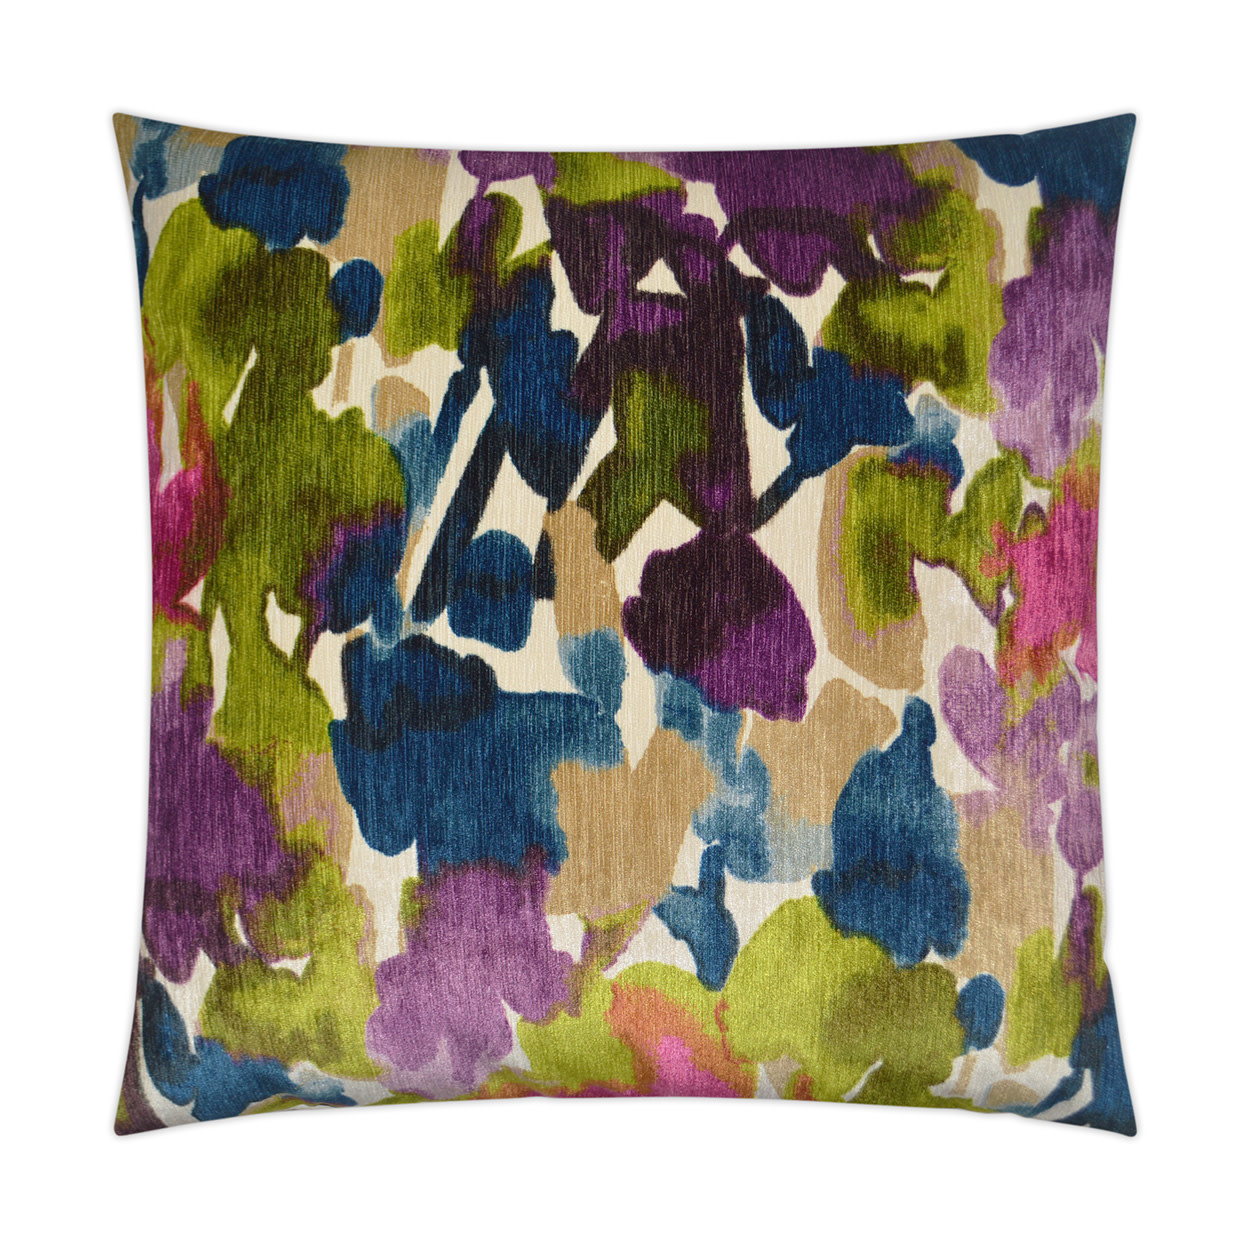 Aquarelle Pillow - Multi 24 x 24